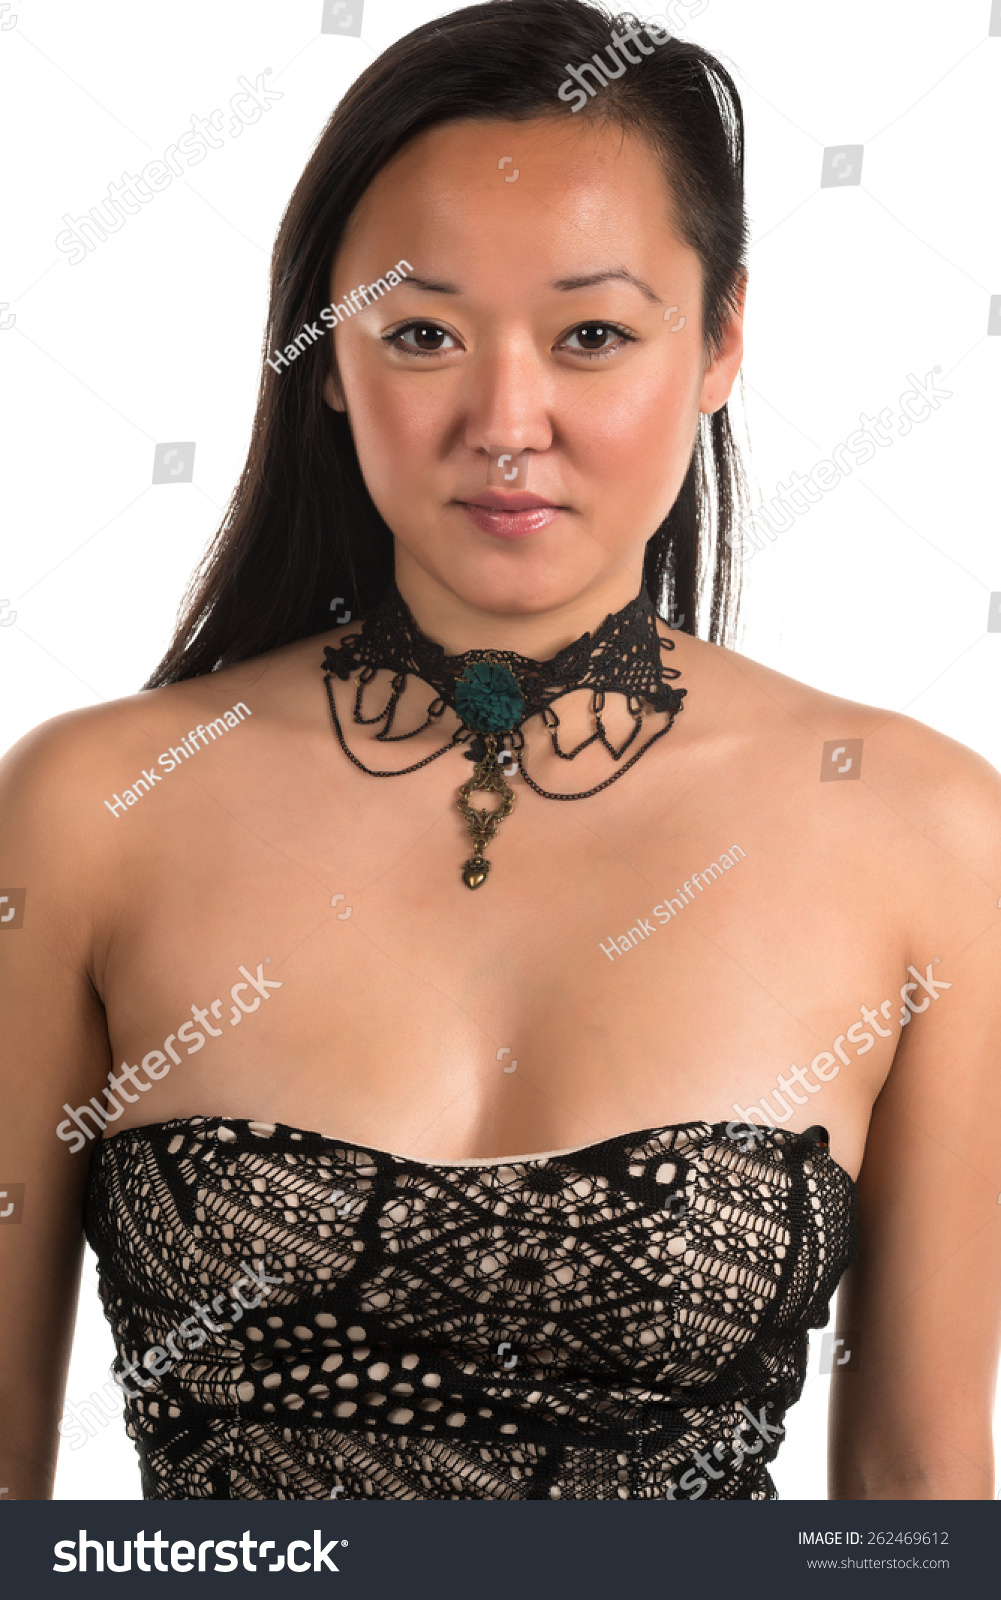 stock-photo-closeup-on-a-pretty-korean-woman-with-bare-shoulders-262469612